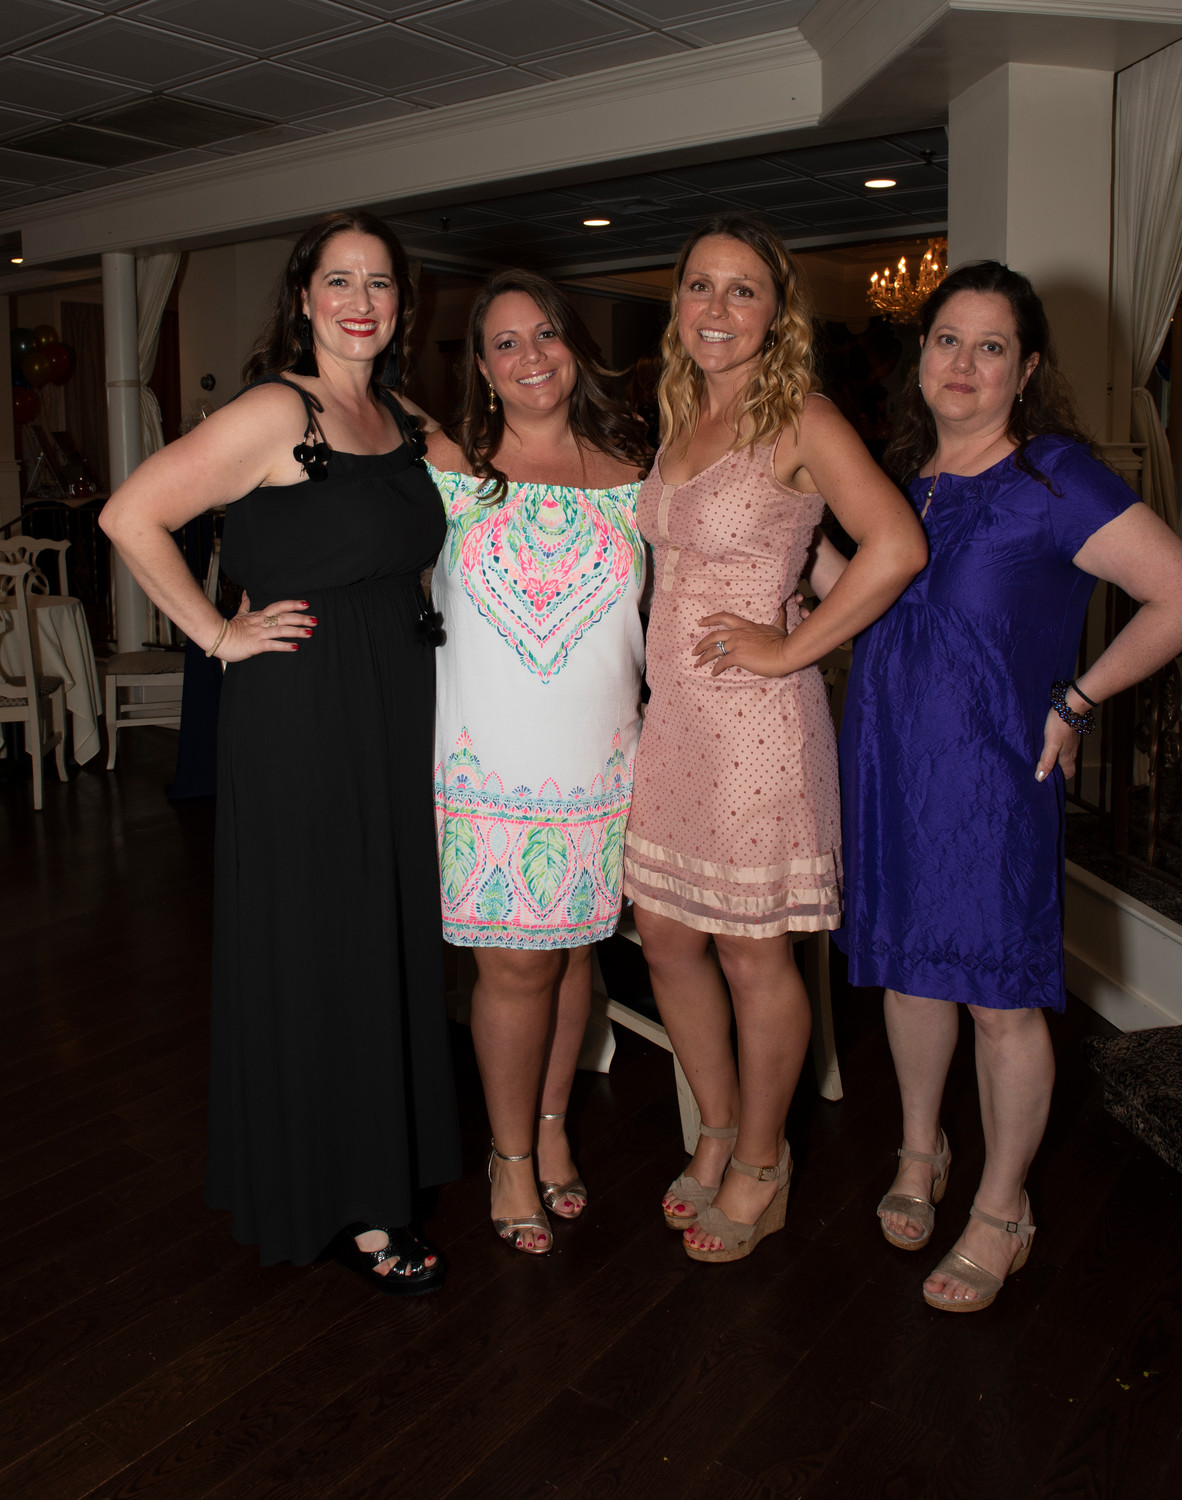 Event co-chairs Lisa Cashman, left, and Vanessa Marks, and PCA co-presidents Amelia Hecker and Natasha Gordon took the opportunity to show off their fashion poses at the fundraiser.